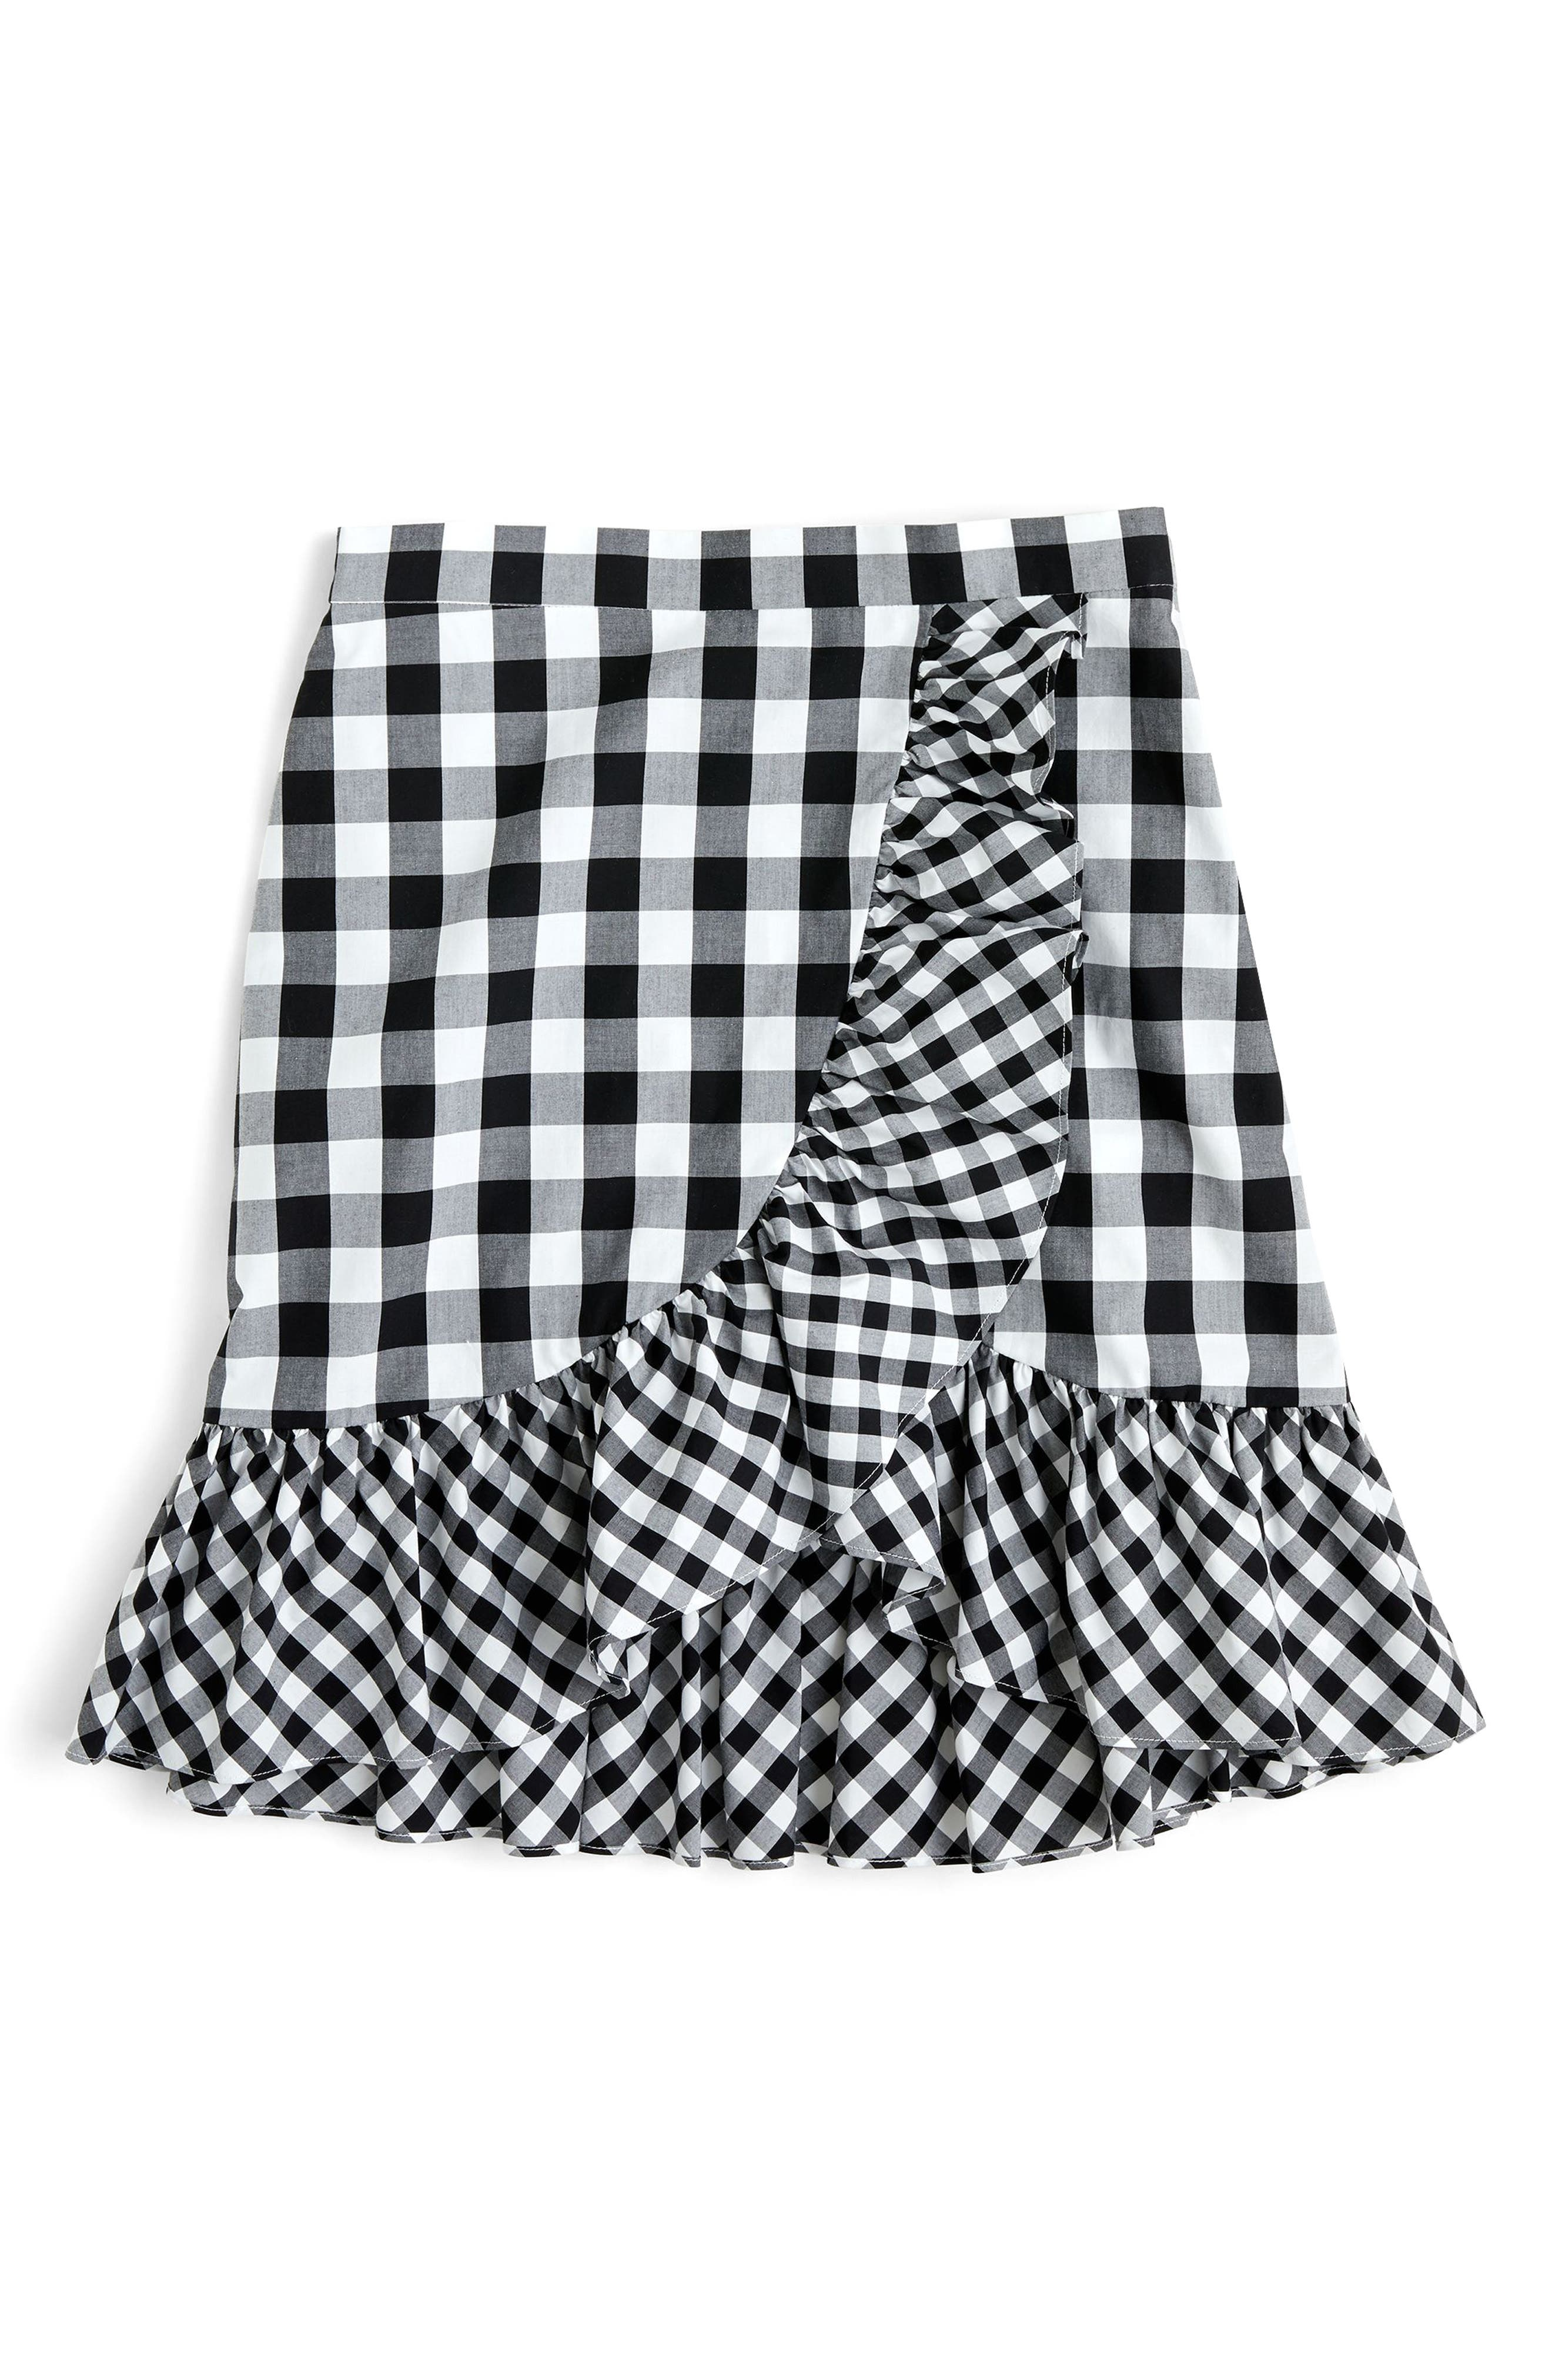 Pistachio Gingham Cotton Poplin Ruffle Skirt,                             Alternate thumbnail 4, color,                             010